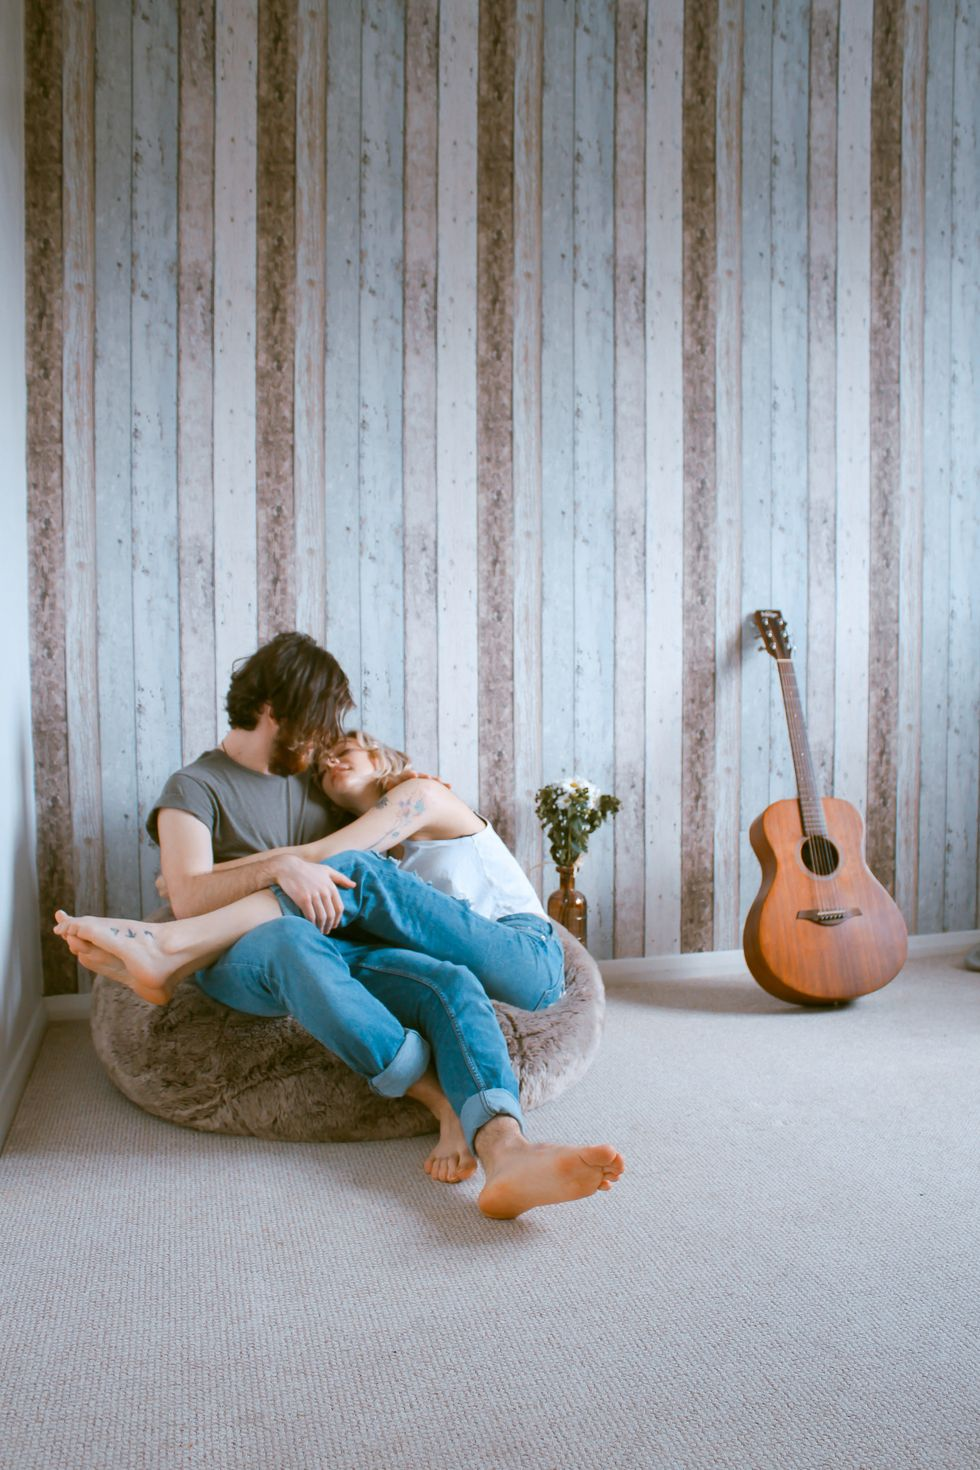 5 Tips For Loving Someone With A Different Love Language Than You